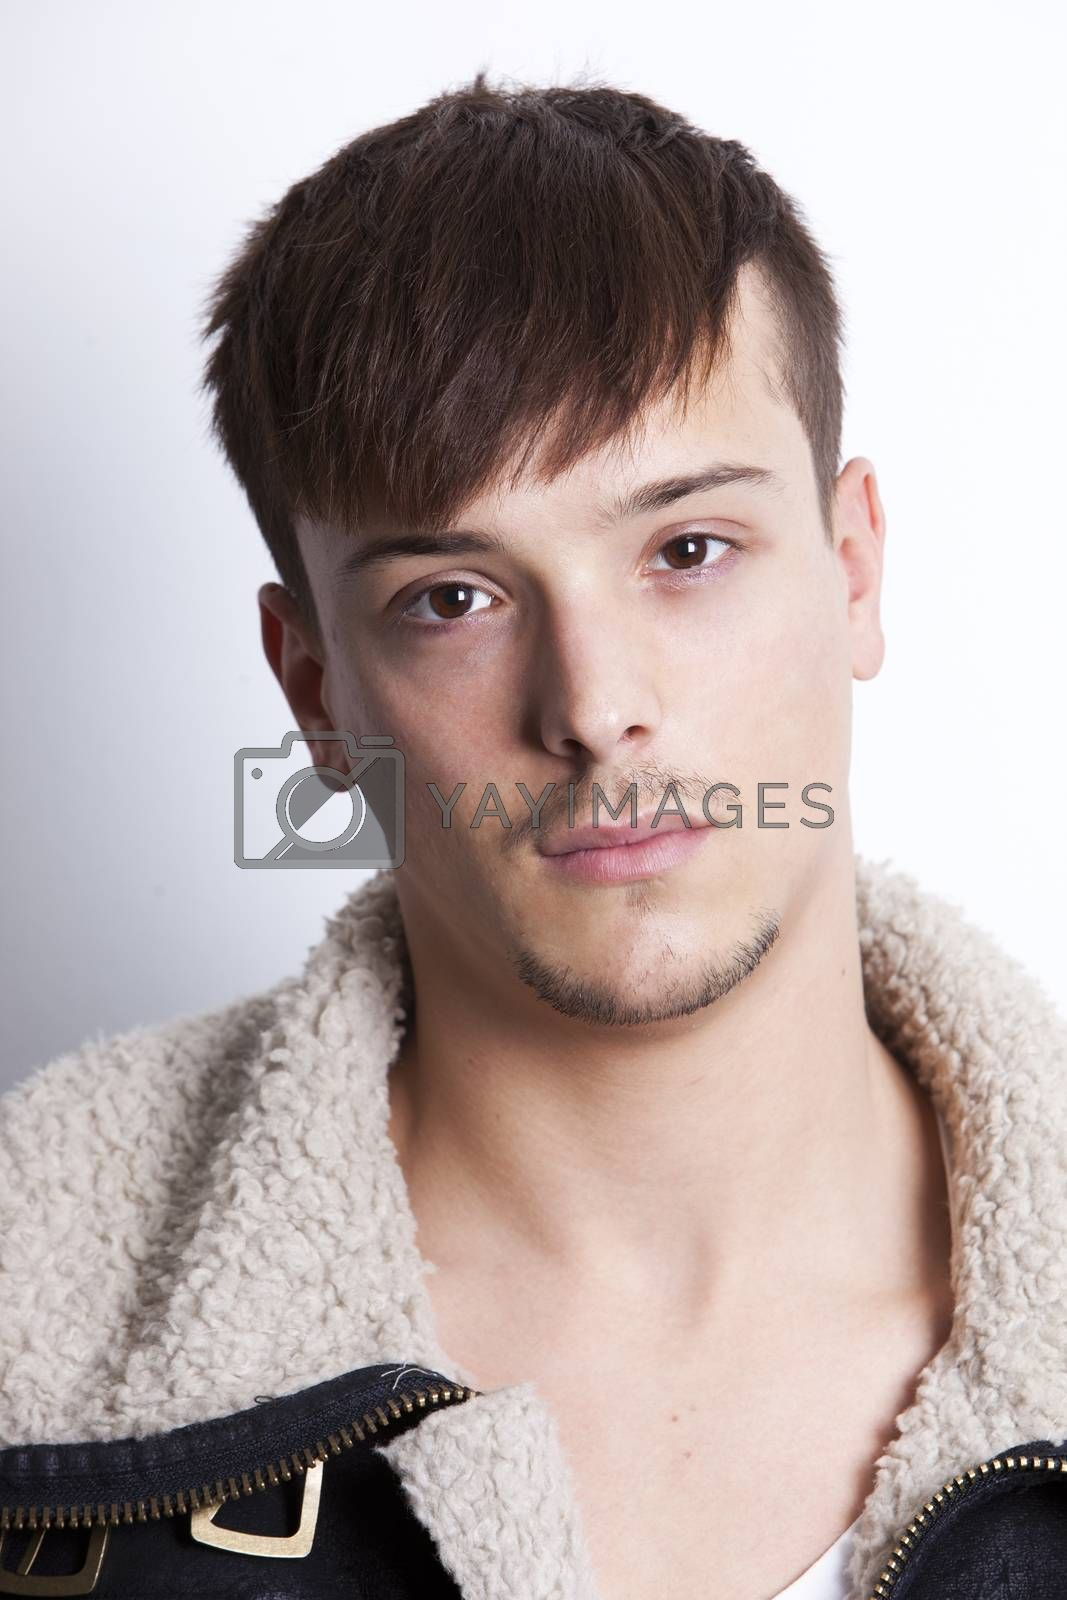 Portrait of handsome young man against white background